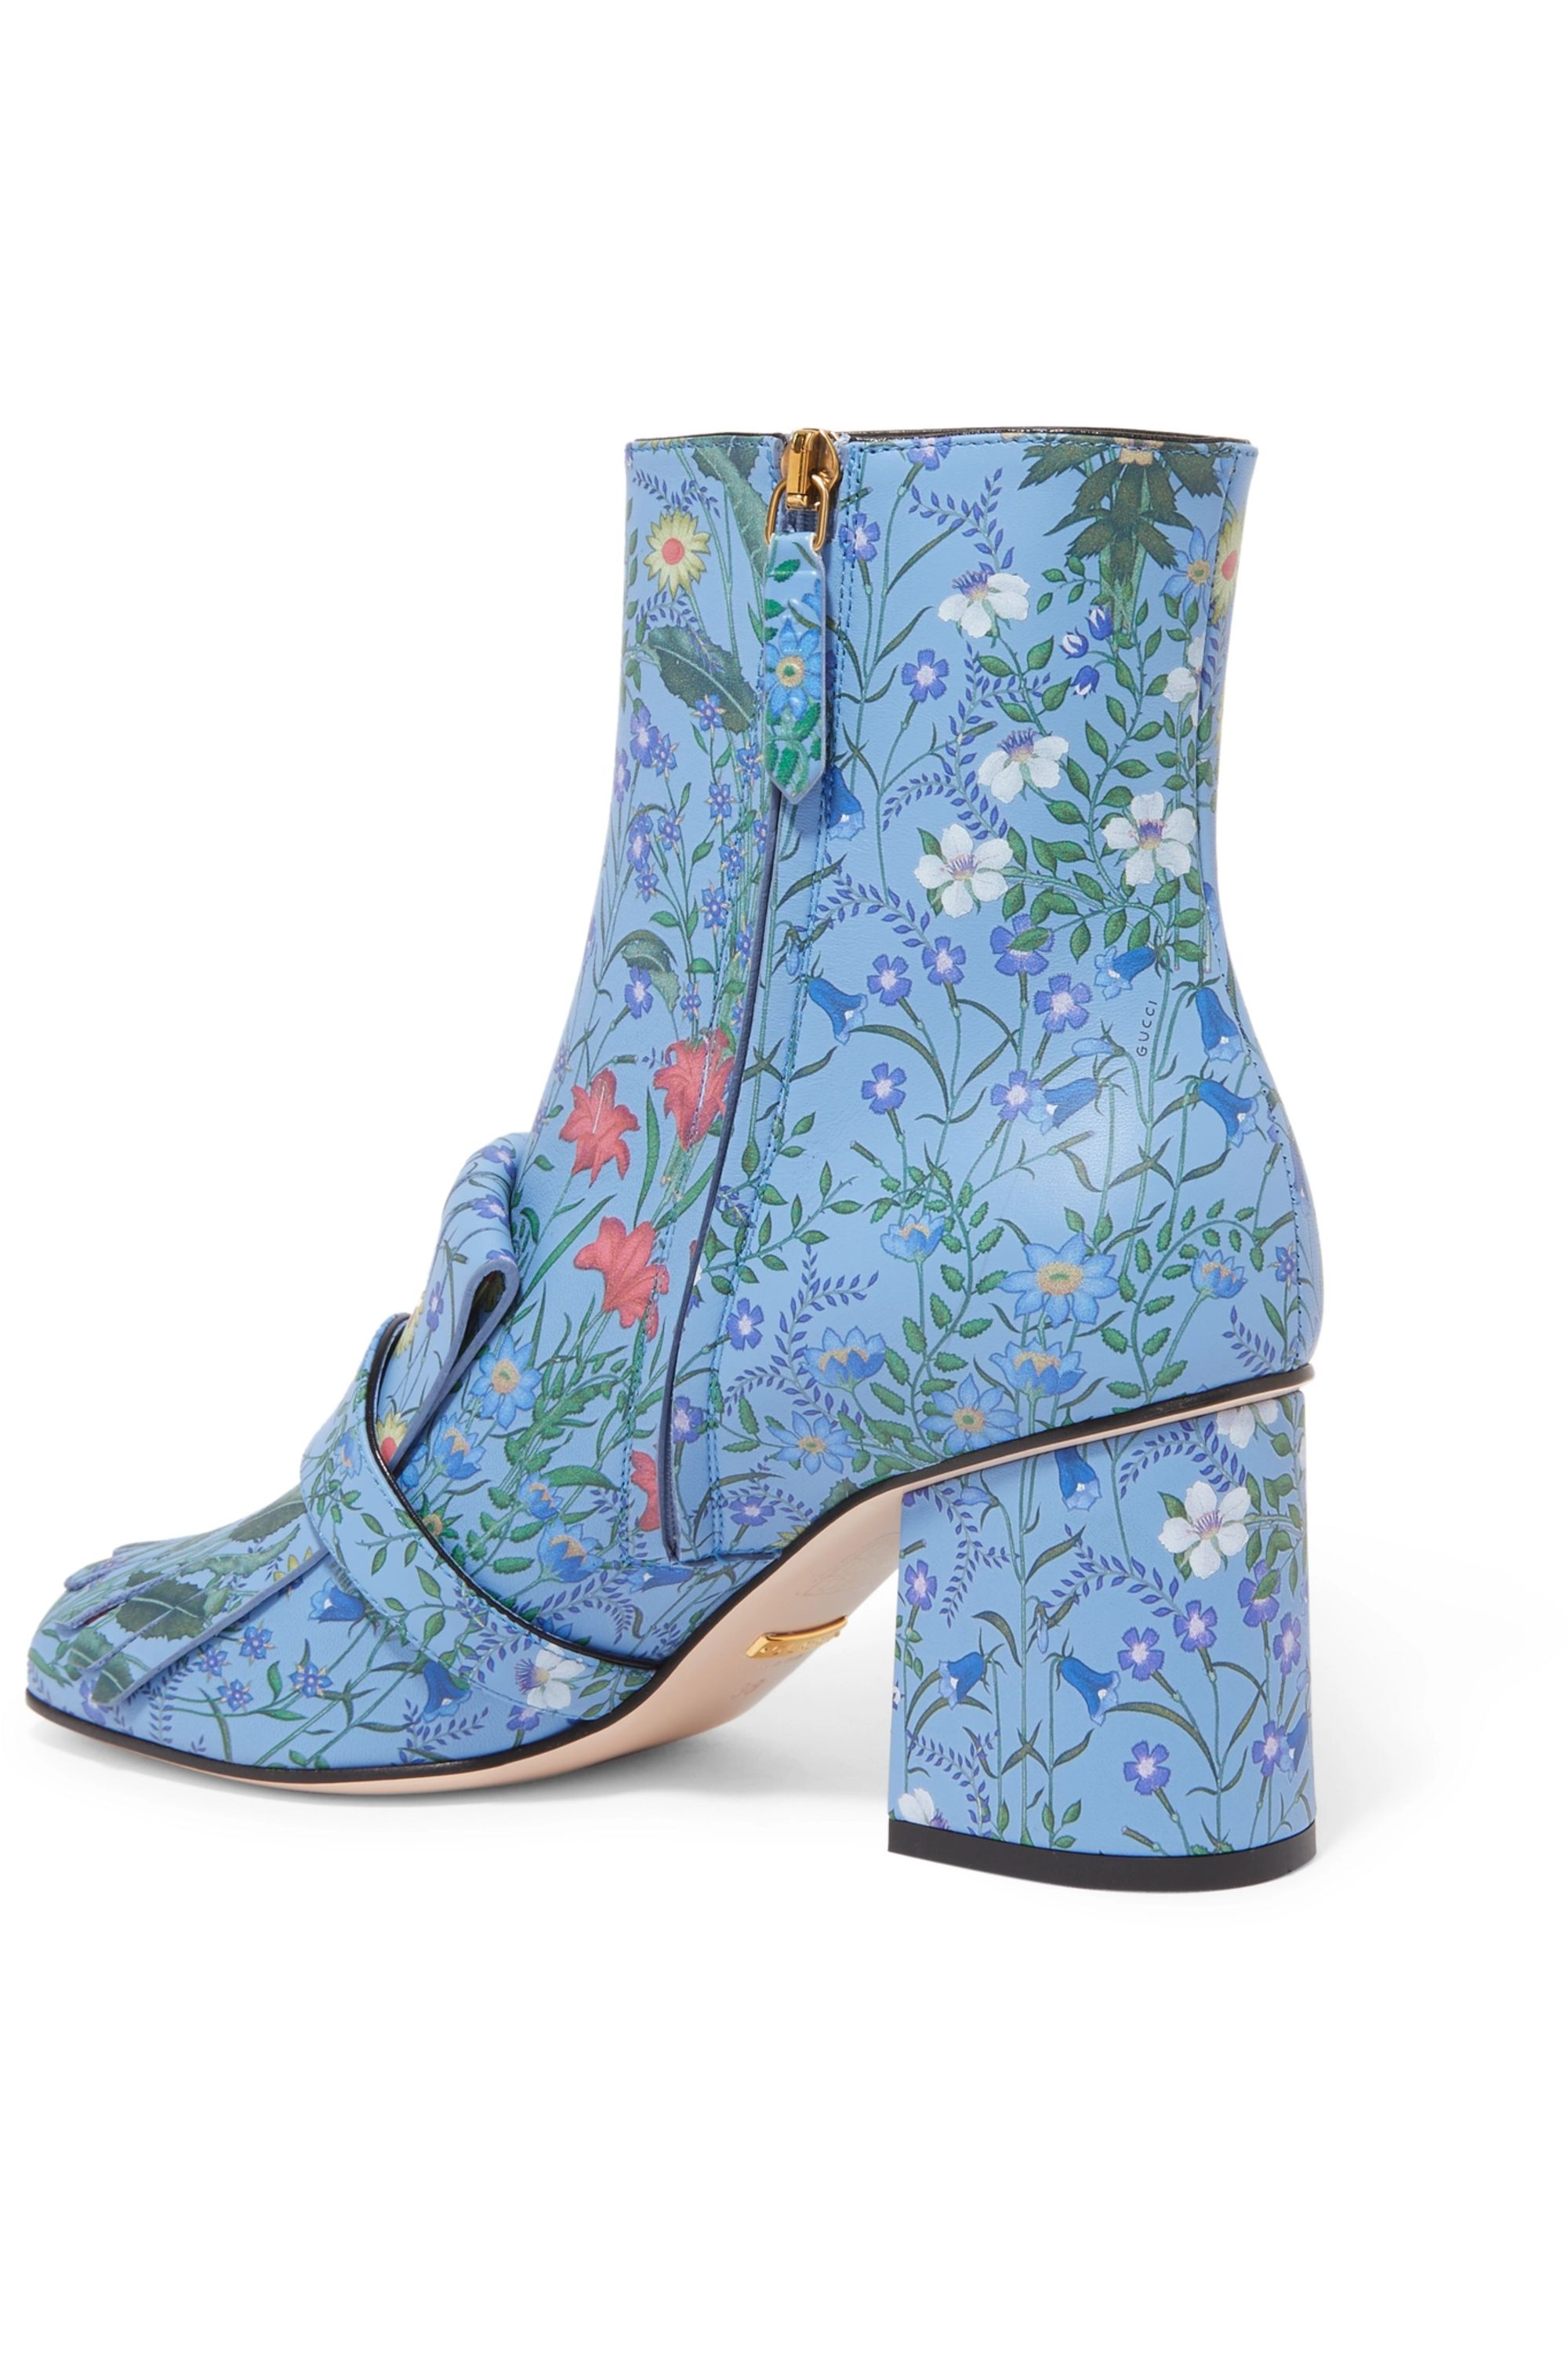 Gucci Marmont fringed floral-print leather ankle boots